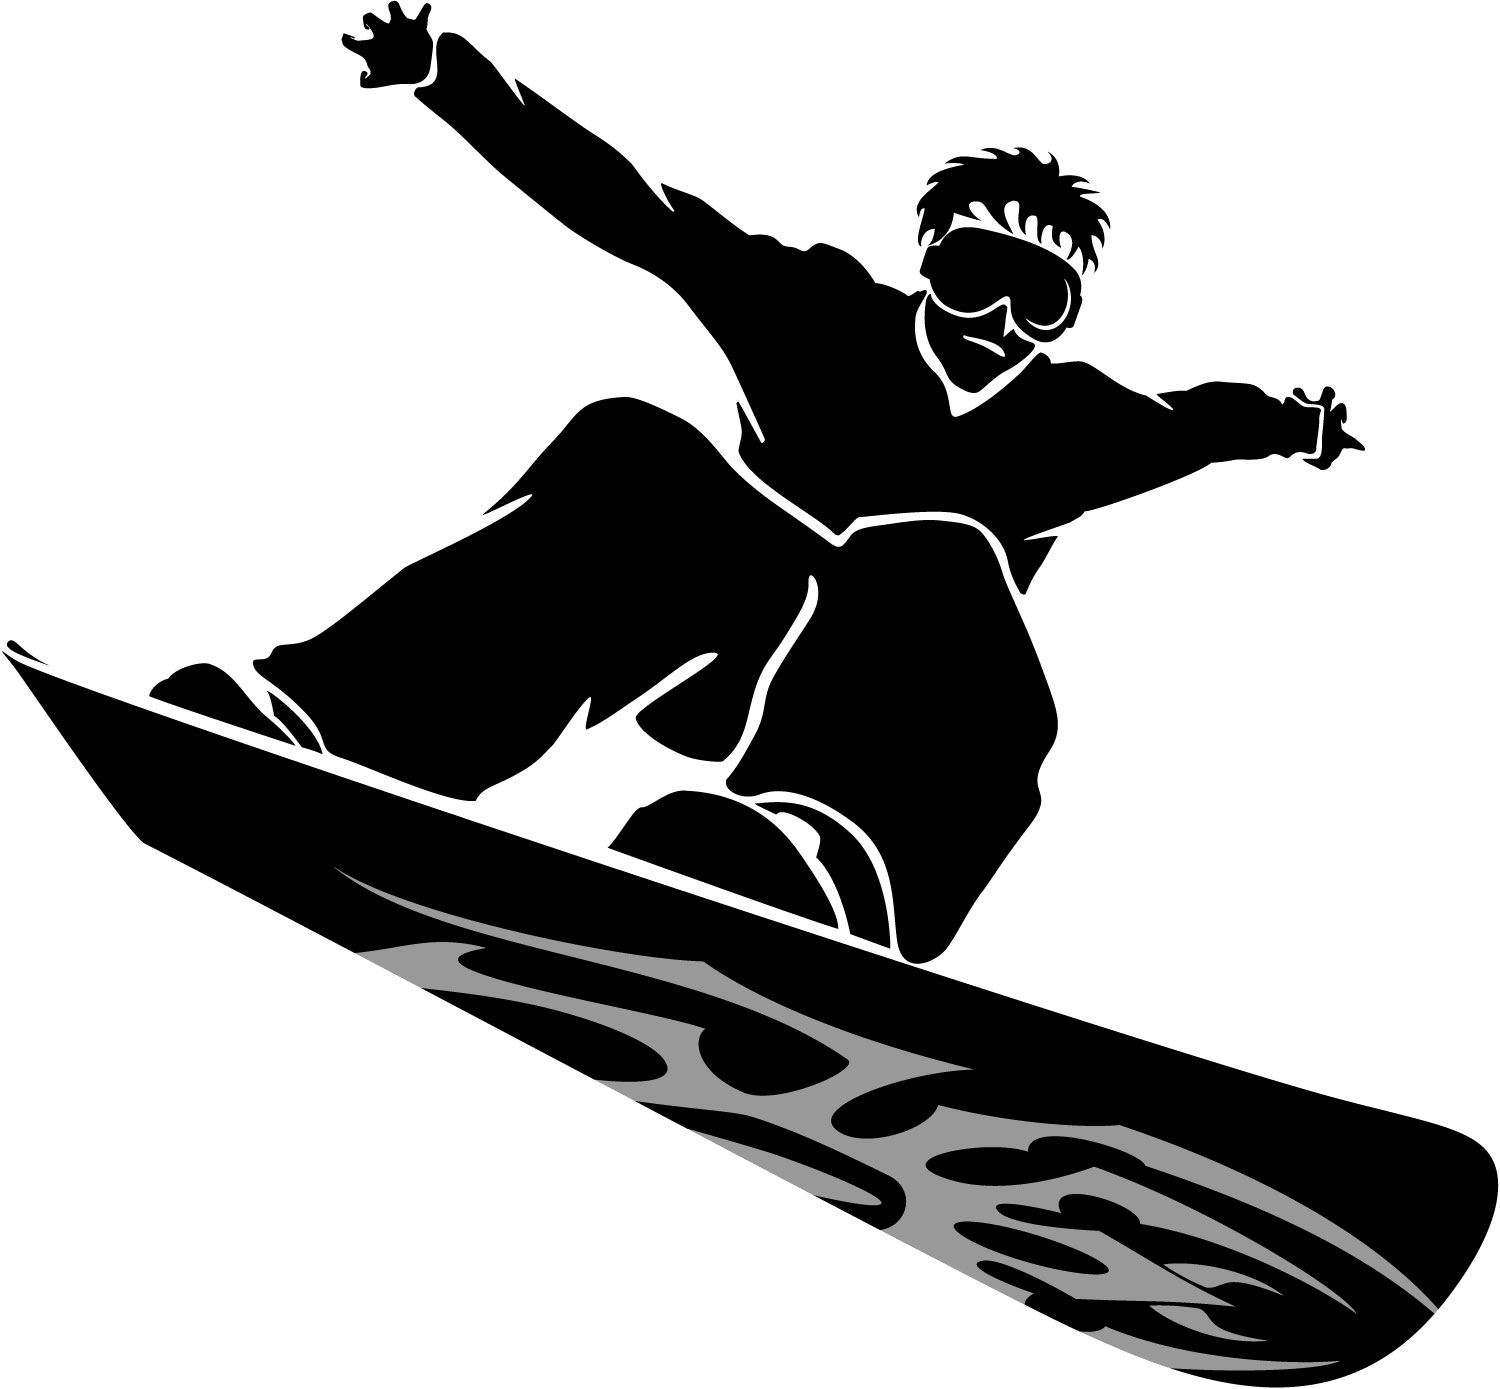 Snowboard clipart picture stock Free Snowboarder Cliparts, Download Free Clip Art, Free Clip Art on ... picture stock